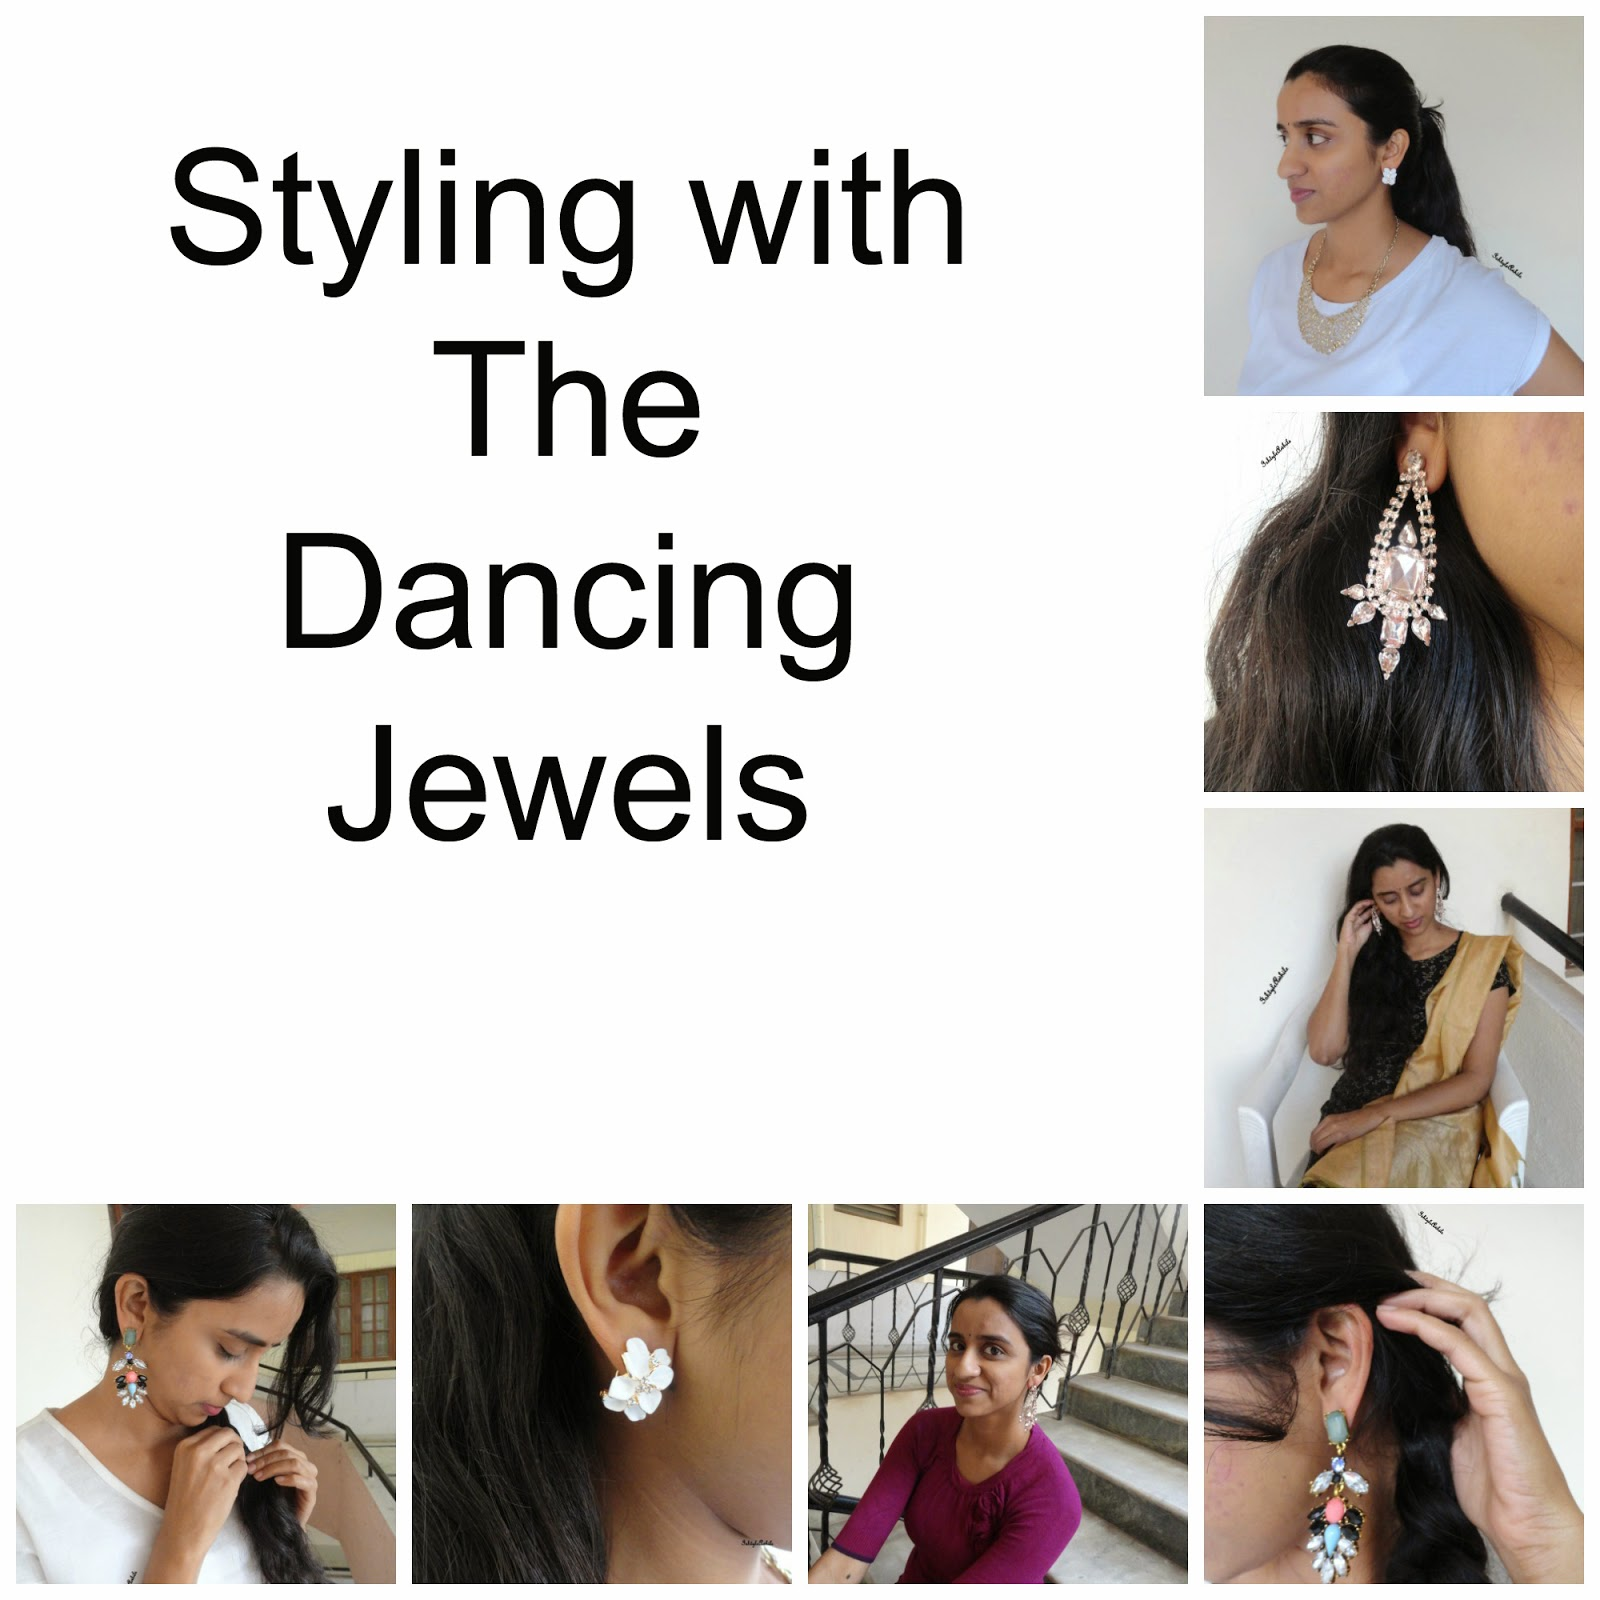 Styling with The Dancing Jewels. image